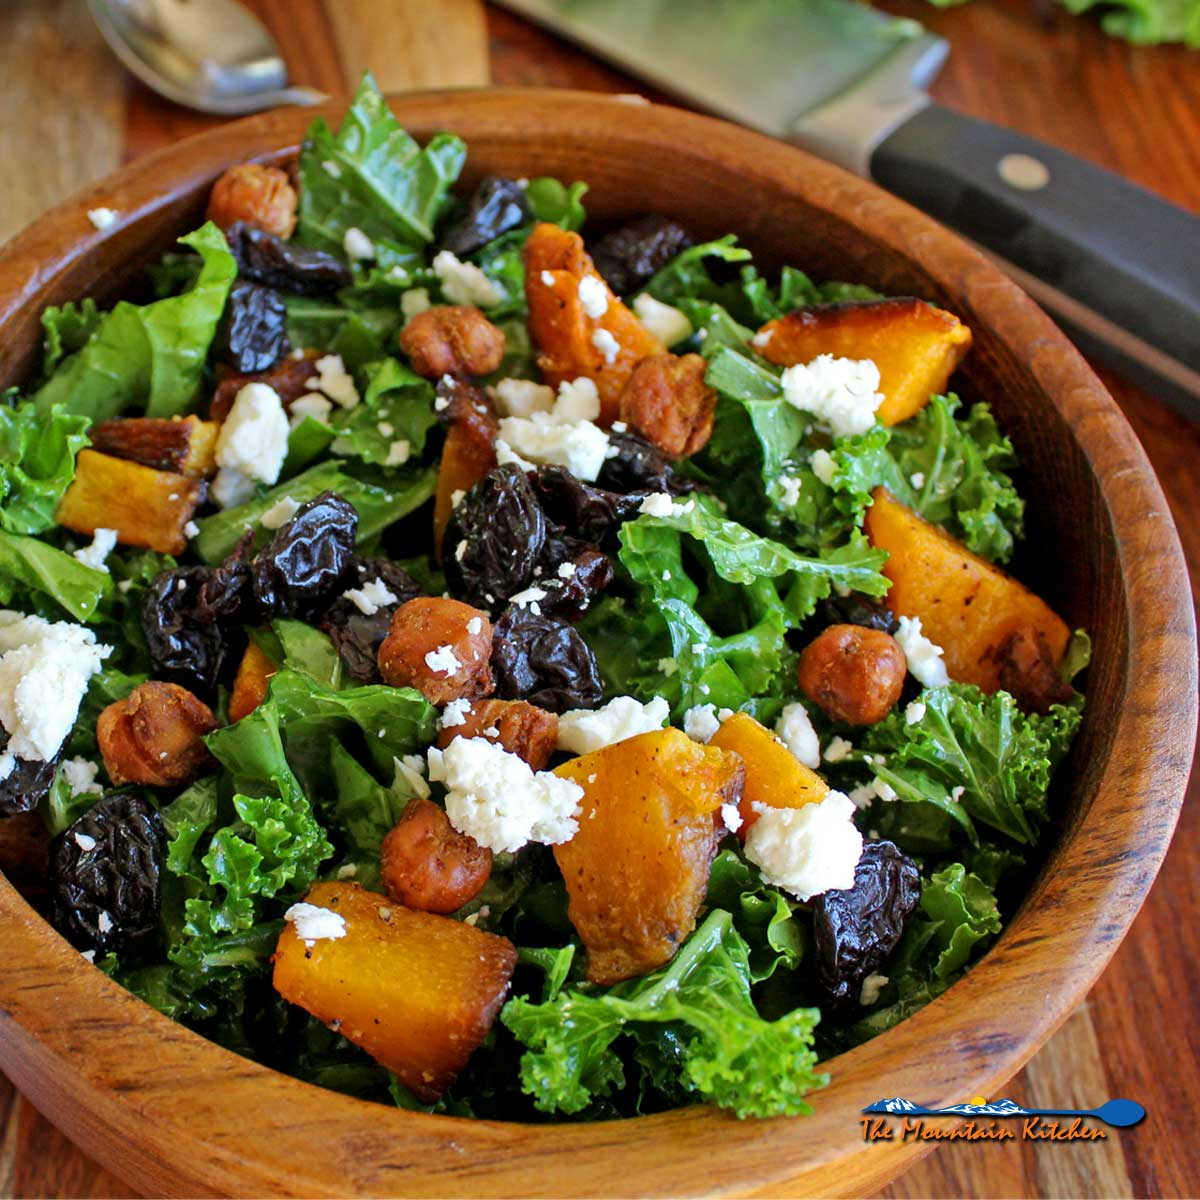 Roasted Butternut Squash Kale Salad {A Meatless Monday Recipe